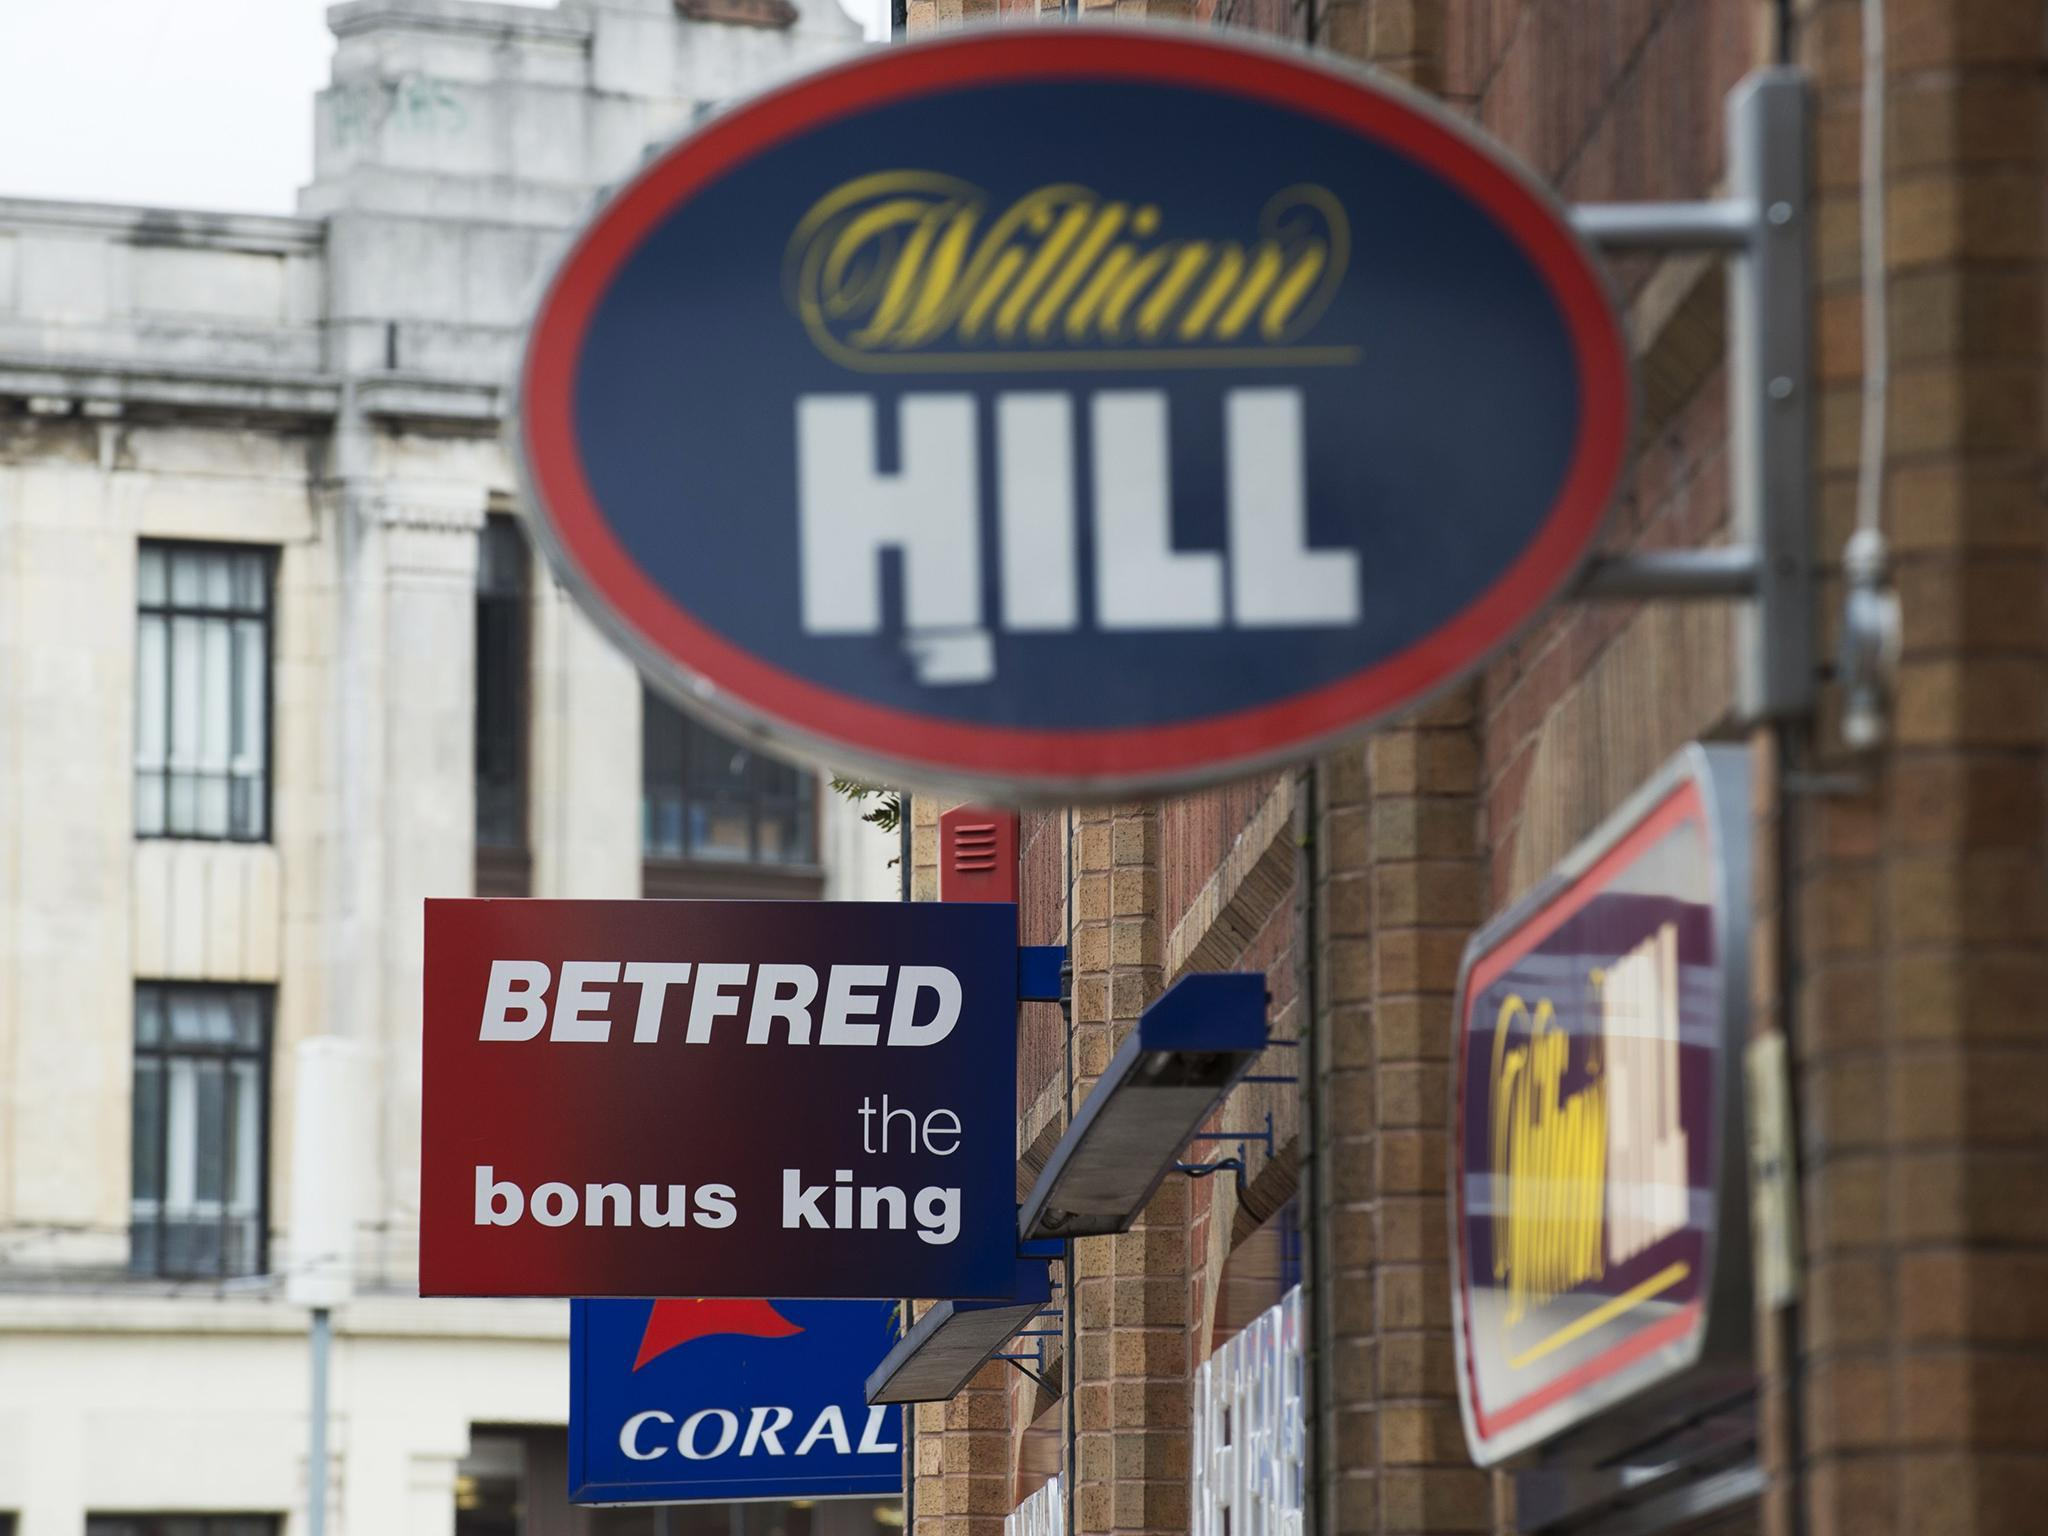 William Hill fine is poison to the 'responsible gambling' mantra pushed by bookies | The Independentindependent_brand_ident_LOGOUntitled